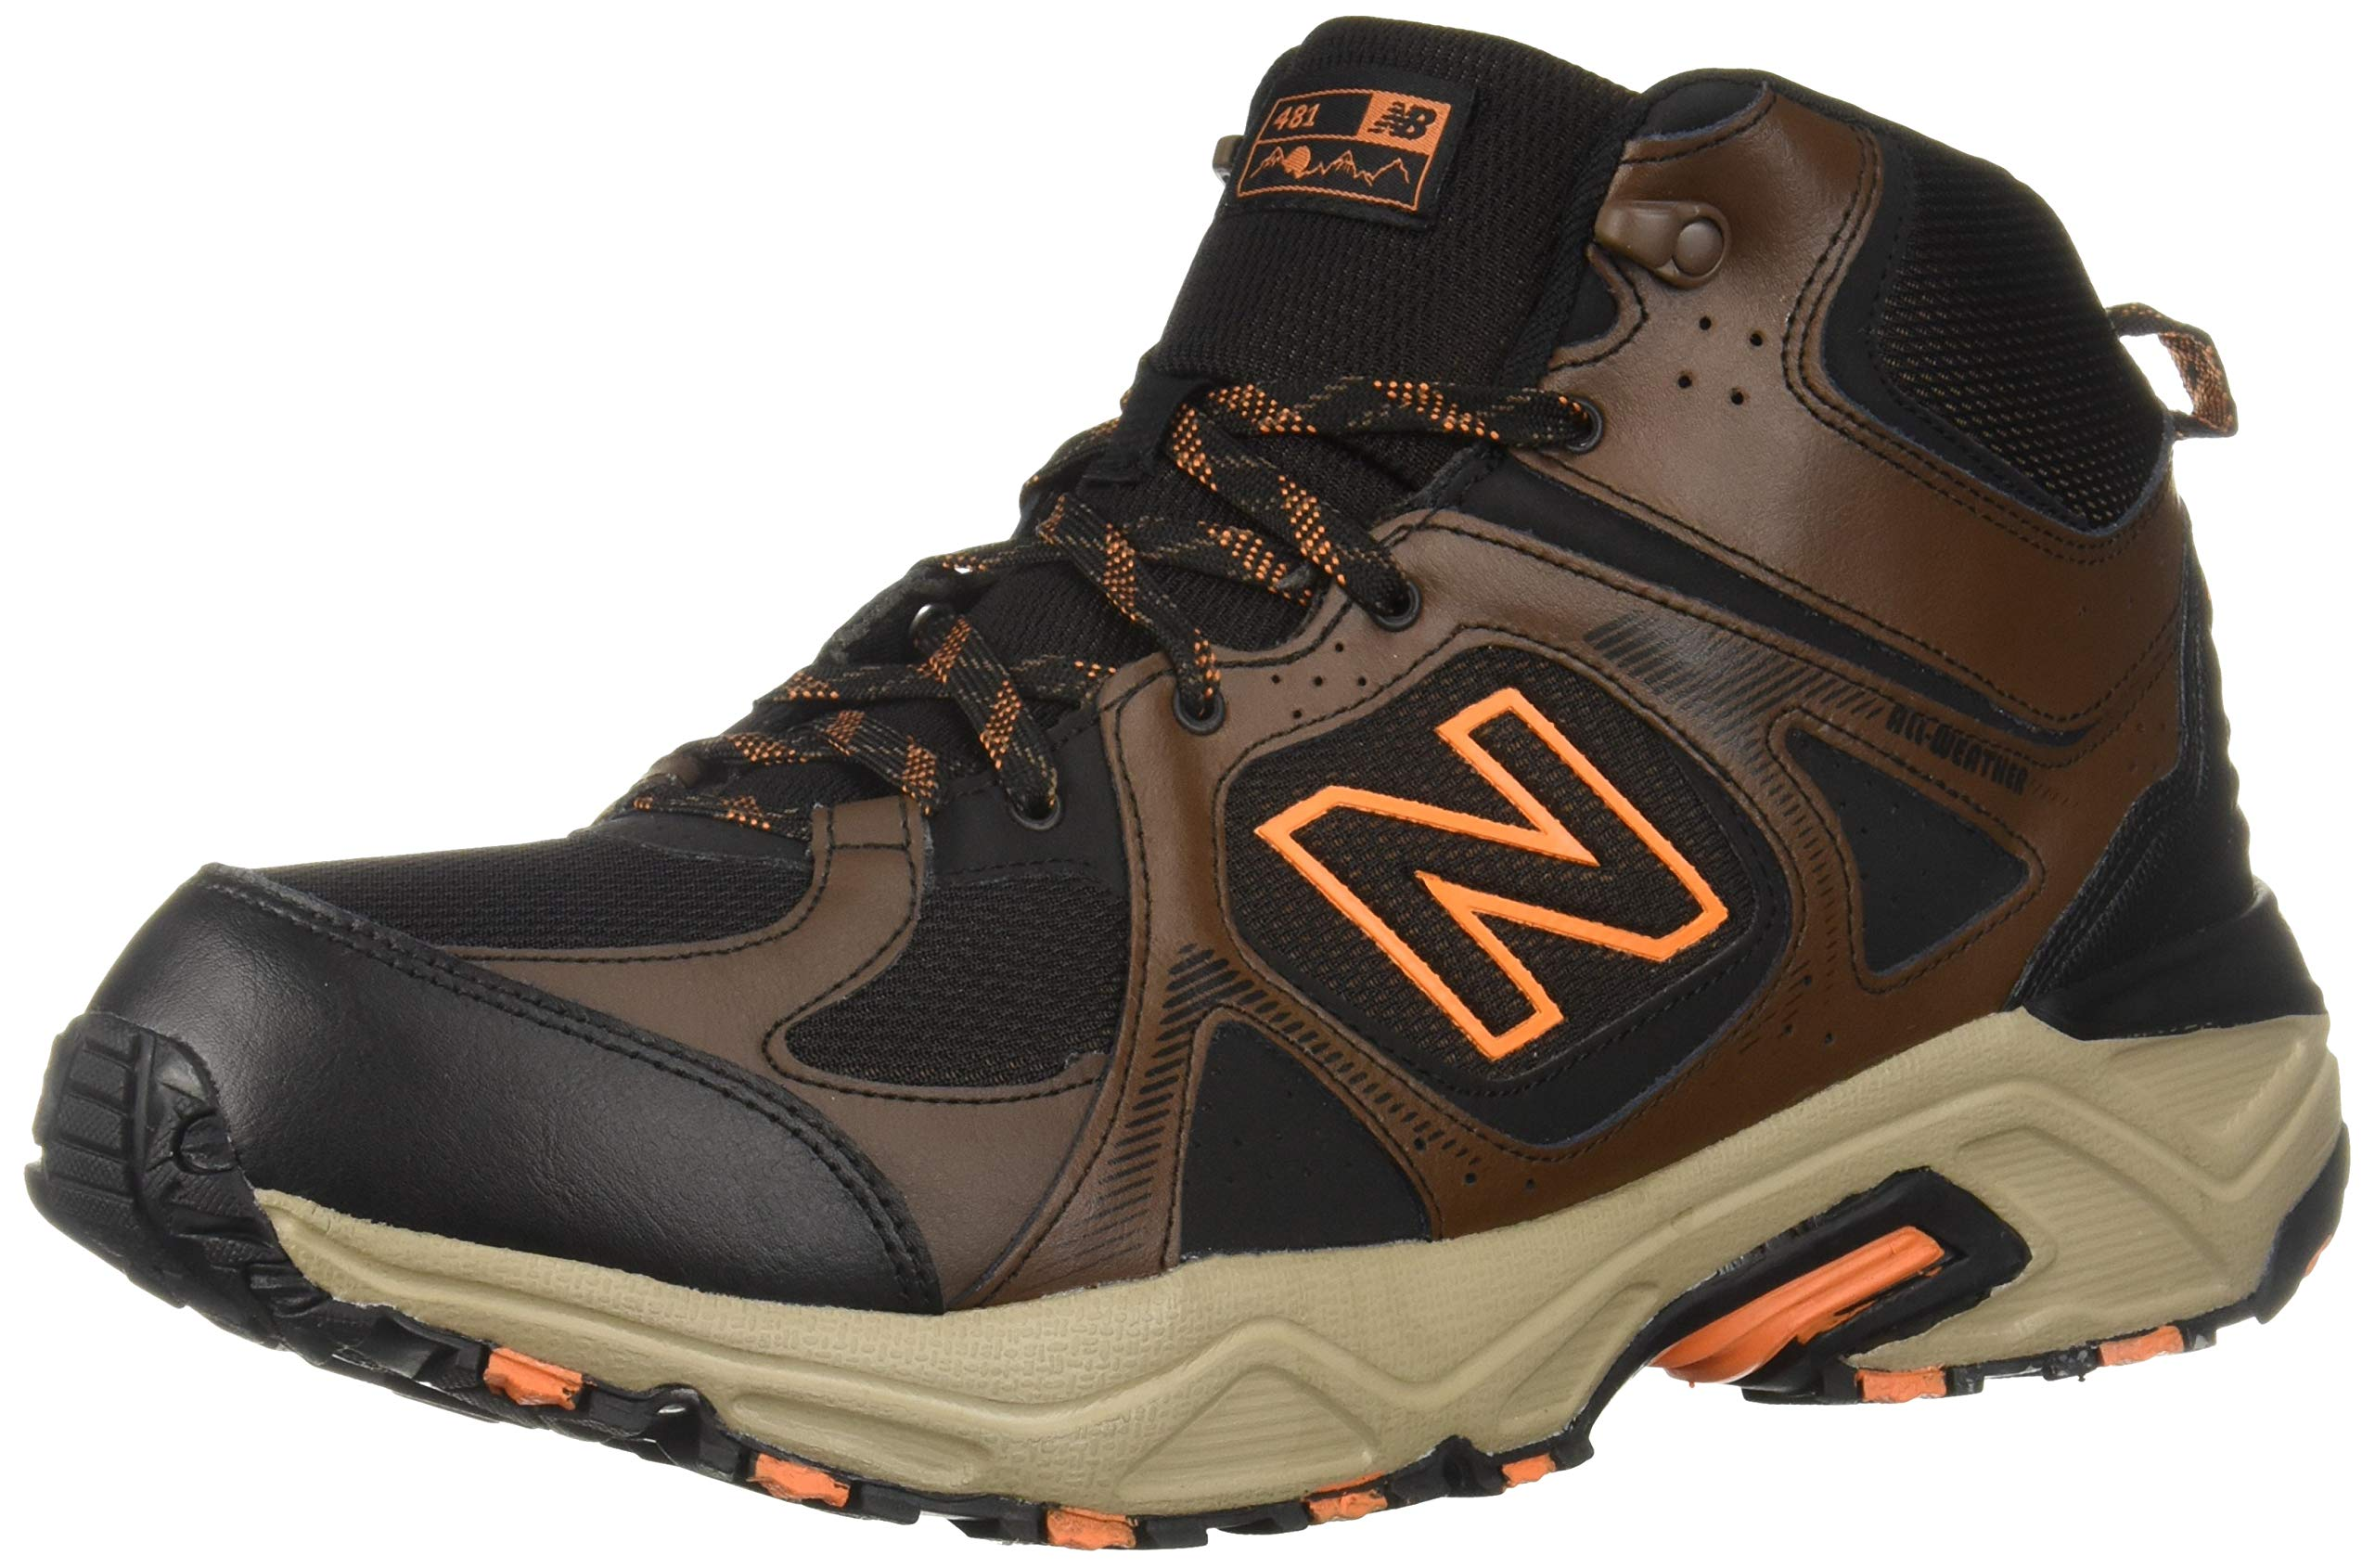 New Balance Men's 481 V3 Cushioning Trail Running Shoe Adrift/Black/Mercury 9 D US by New Balance (Image #1)